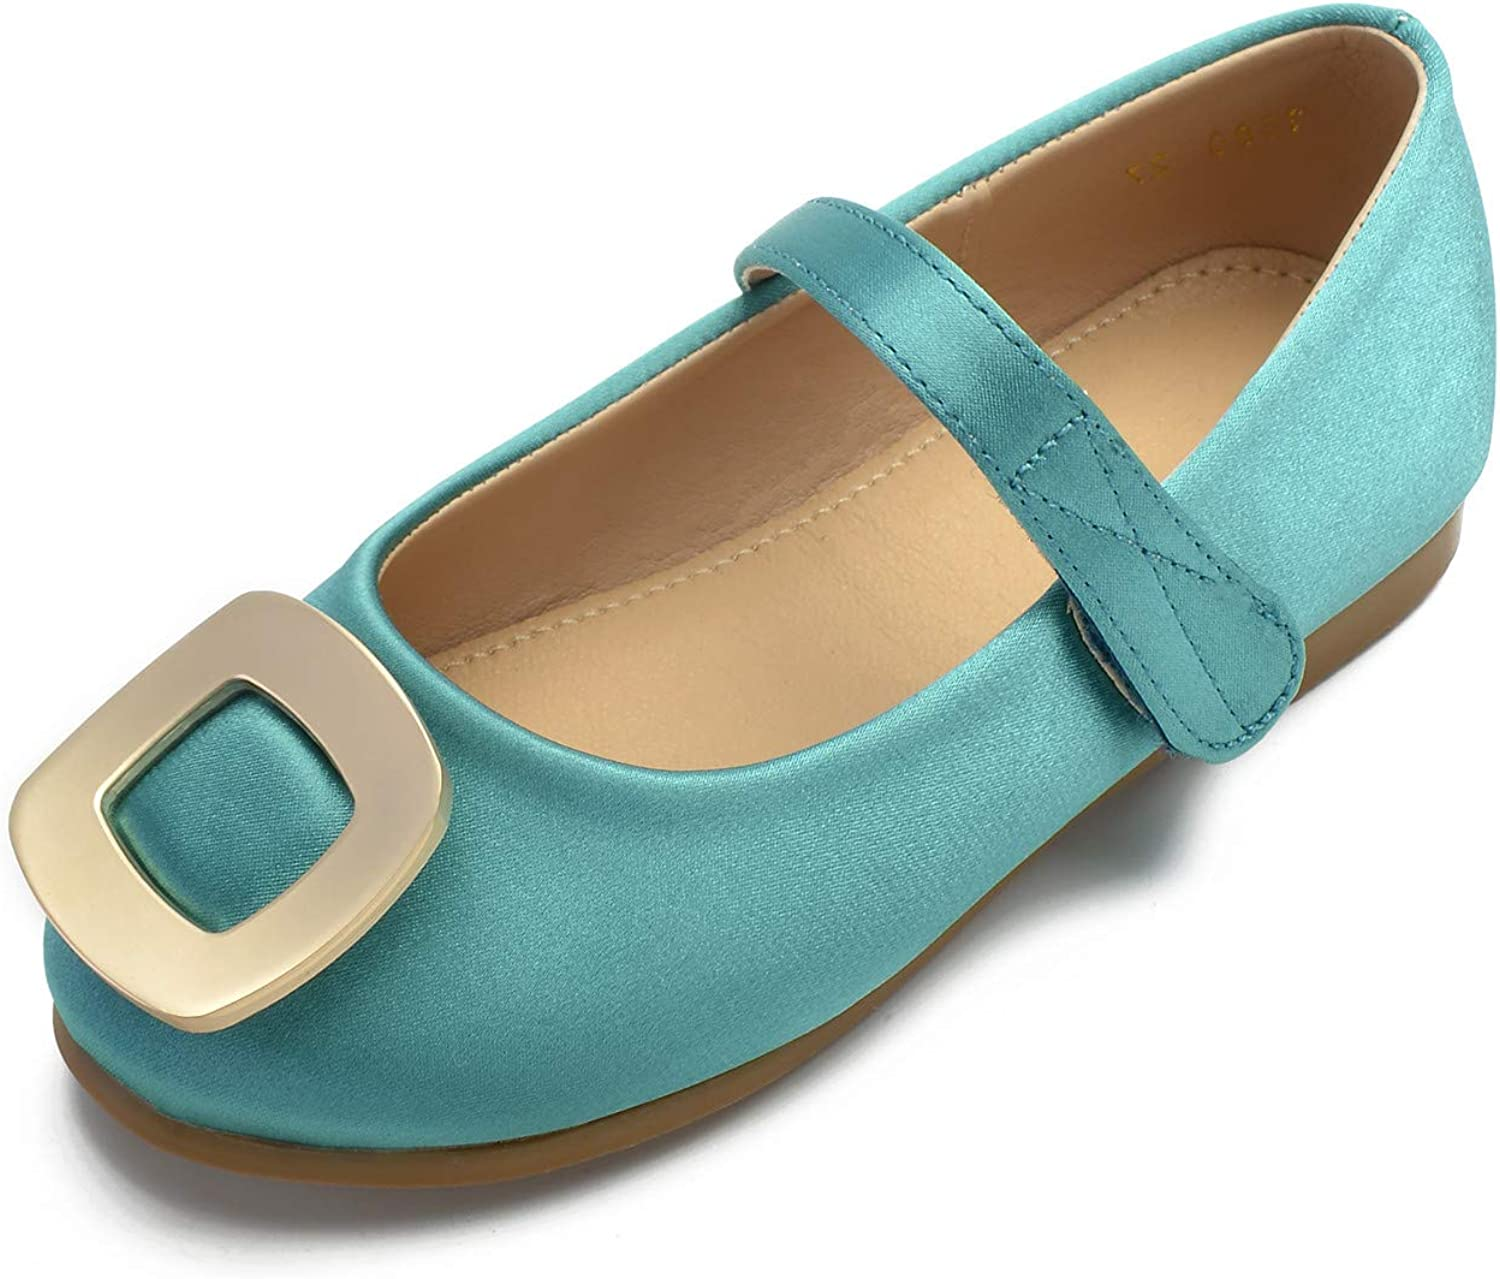 CCBubble Flat Satin Mary Jane Shoe for Girls Round Toe Ankle Strap Princess Dress Flat Shoes for Girls 1211-2/3